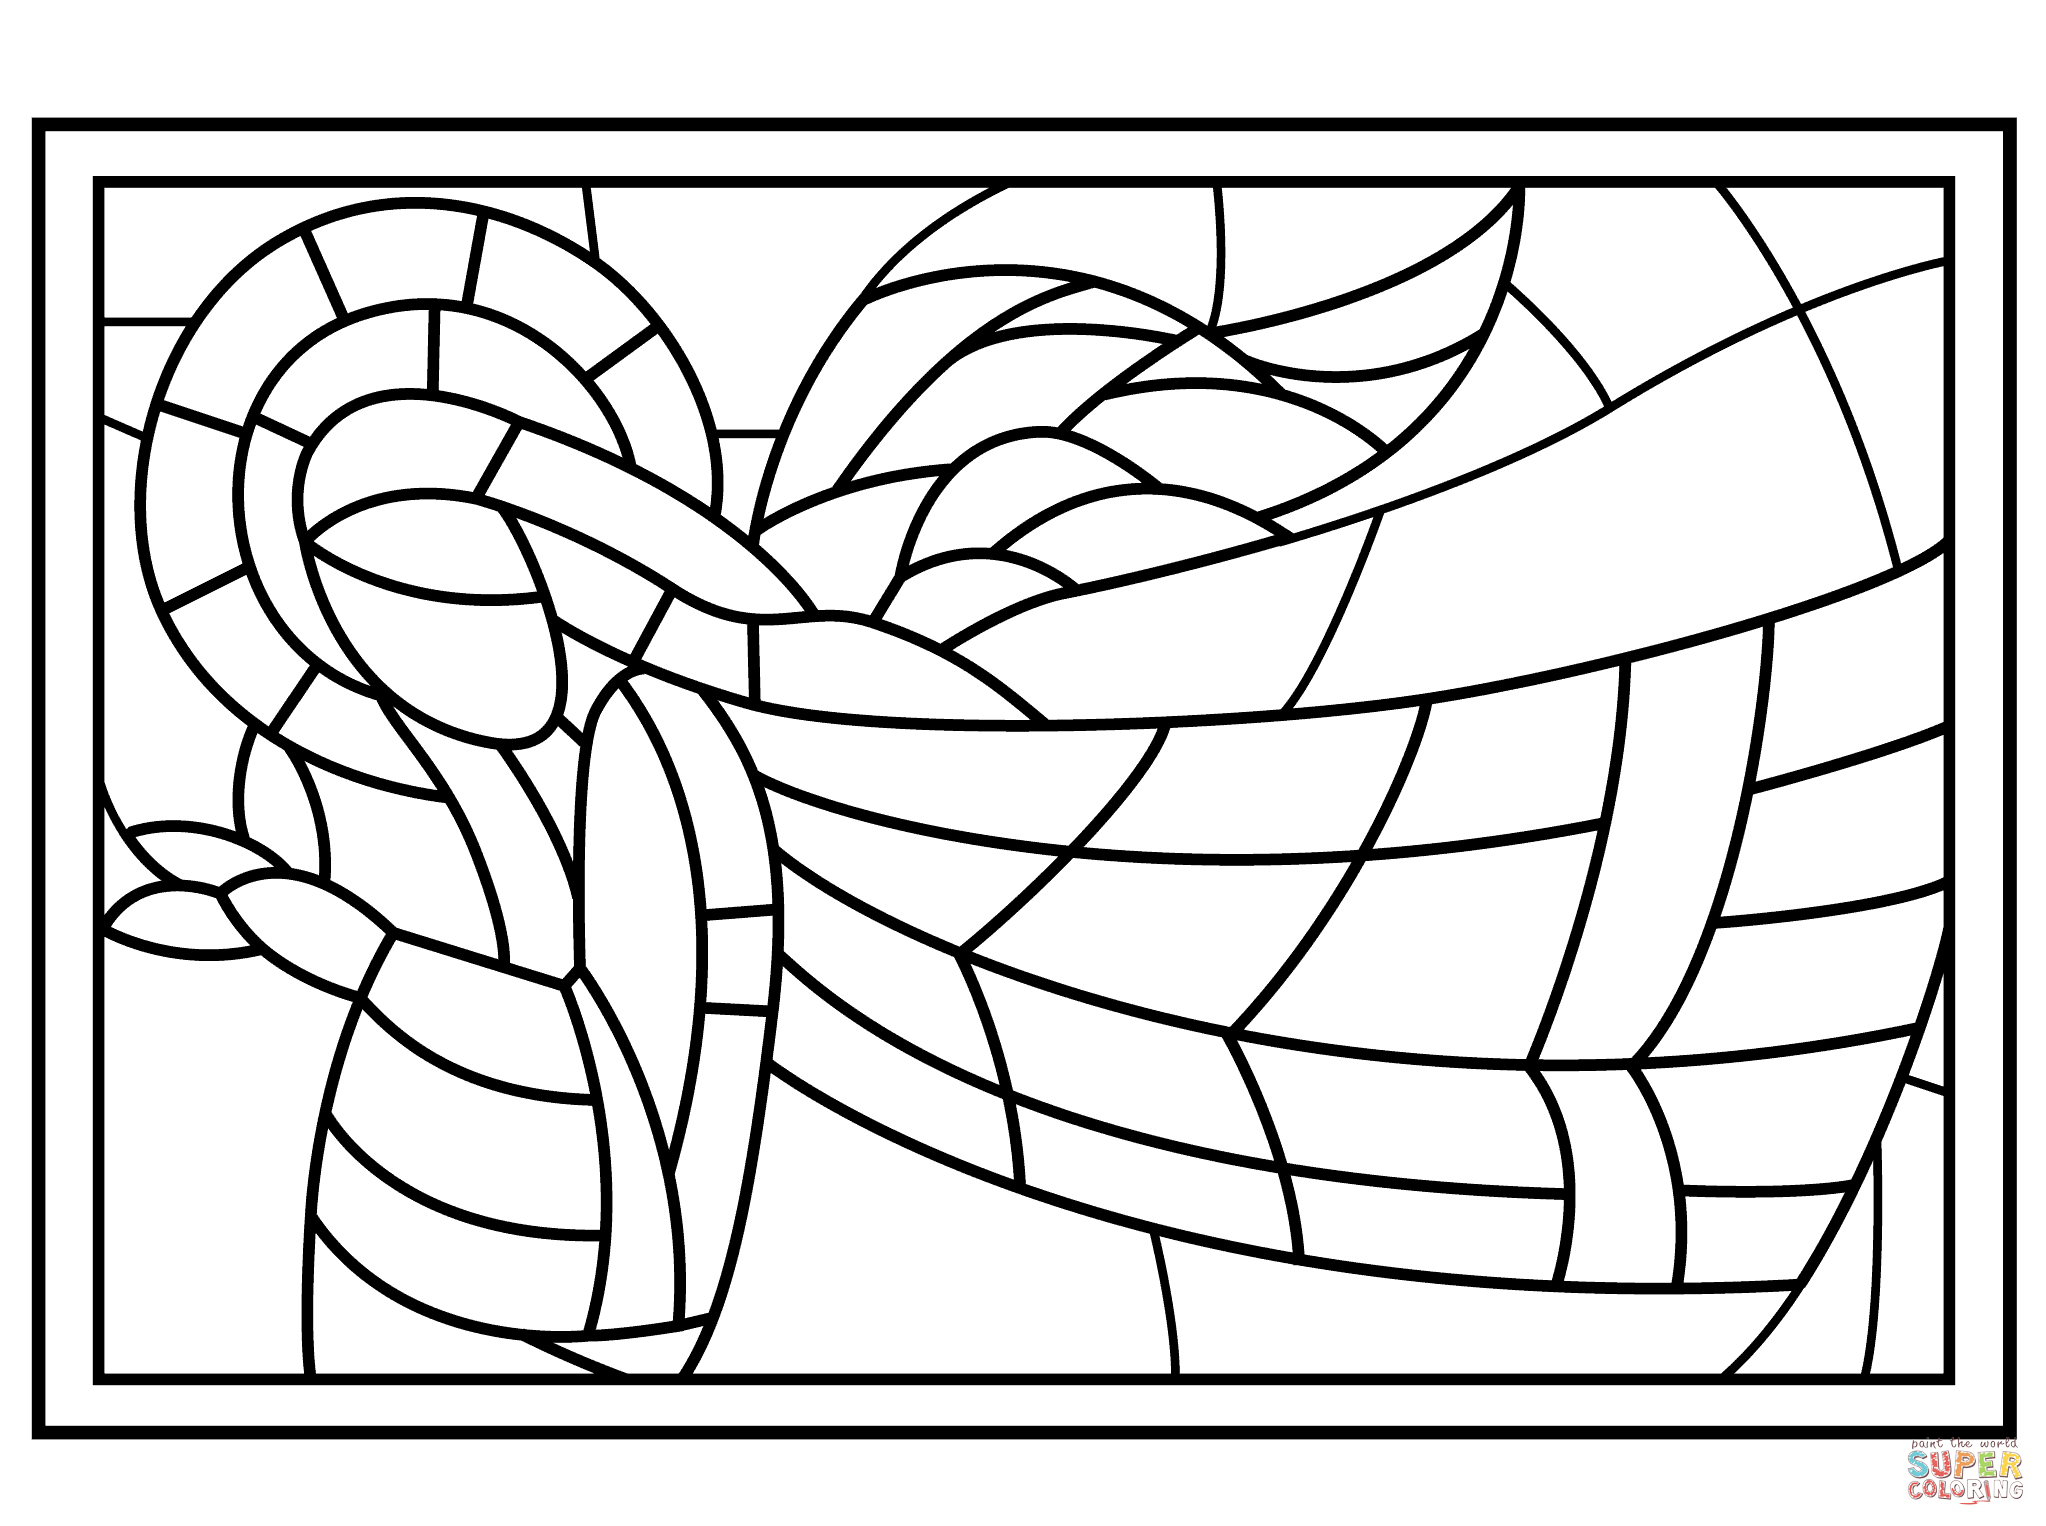 Stained Glass Coloring Pages | Free Coloring Pages - Free Printable Stained Glass Patterns